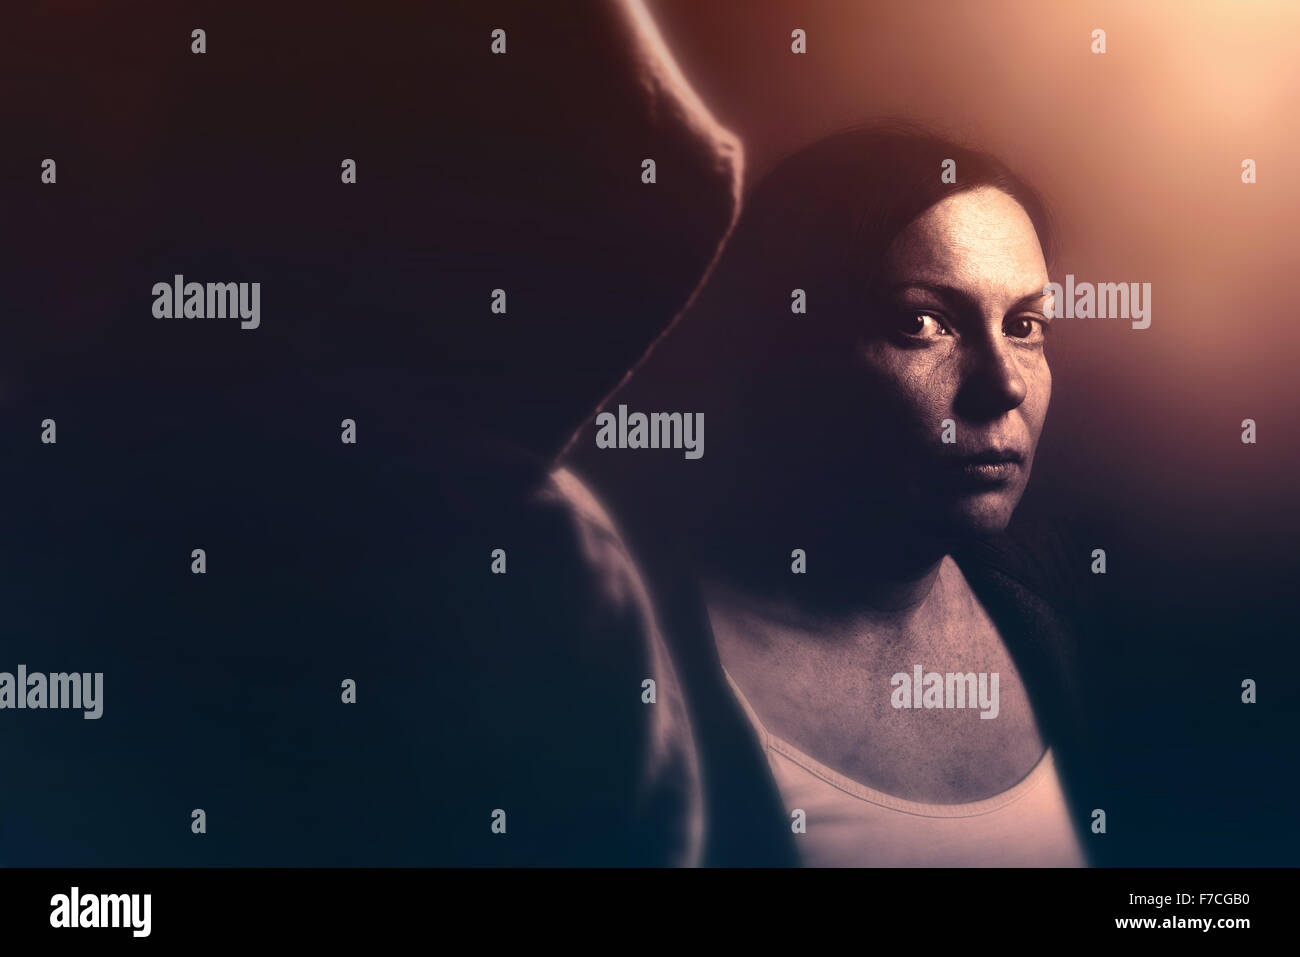 Stalker concept, intense low key portrait of woman being stalked, retro toned image with selective focus - Stock Image